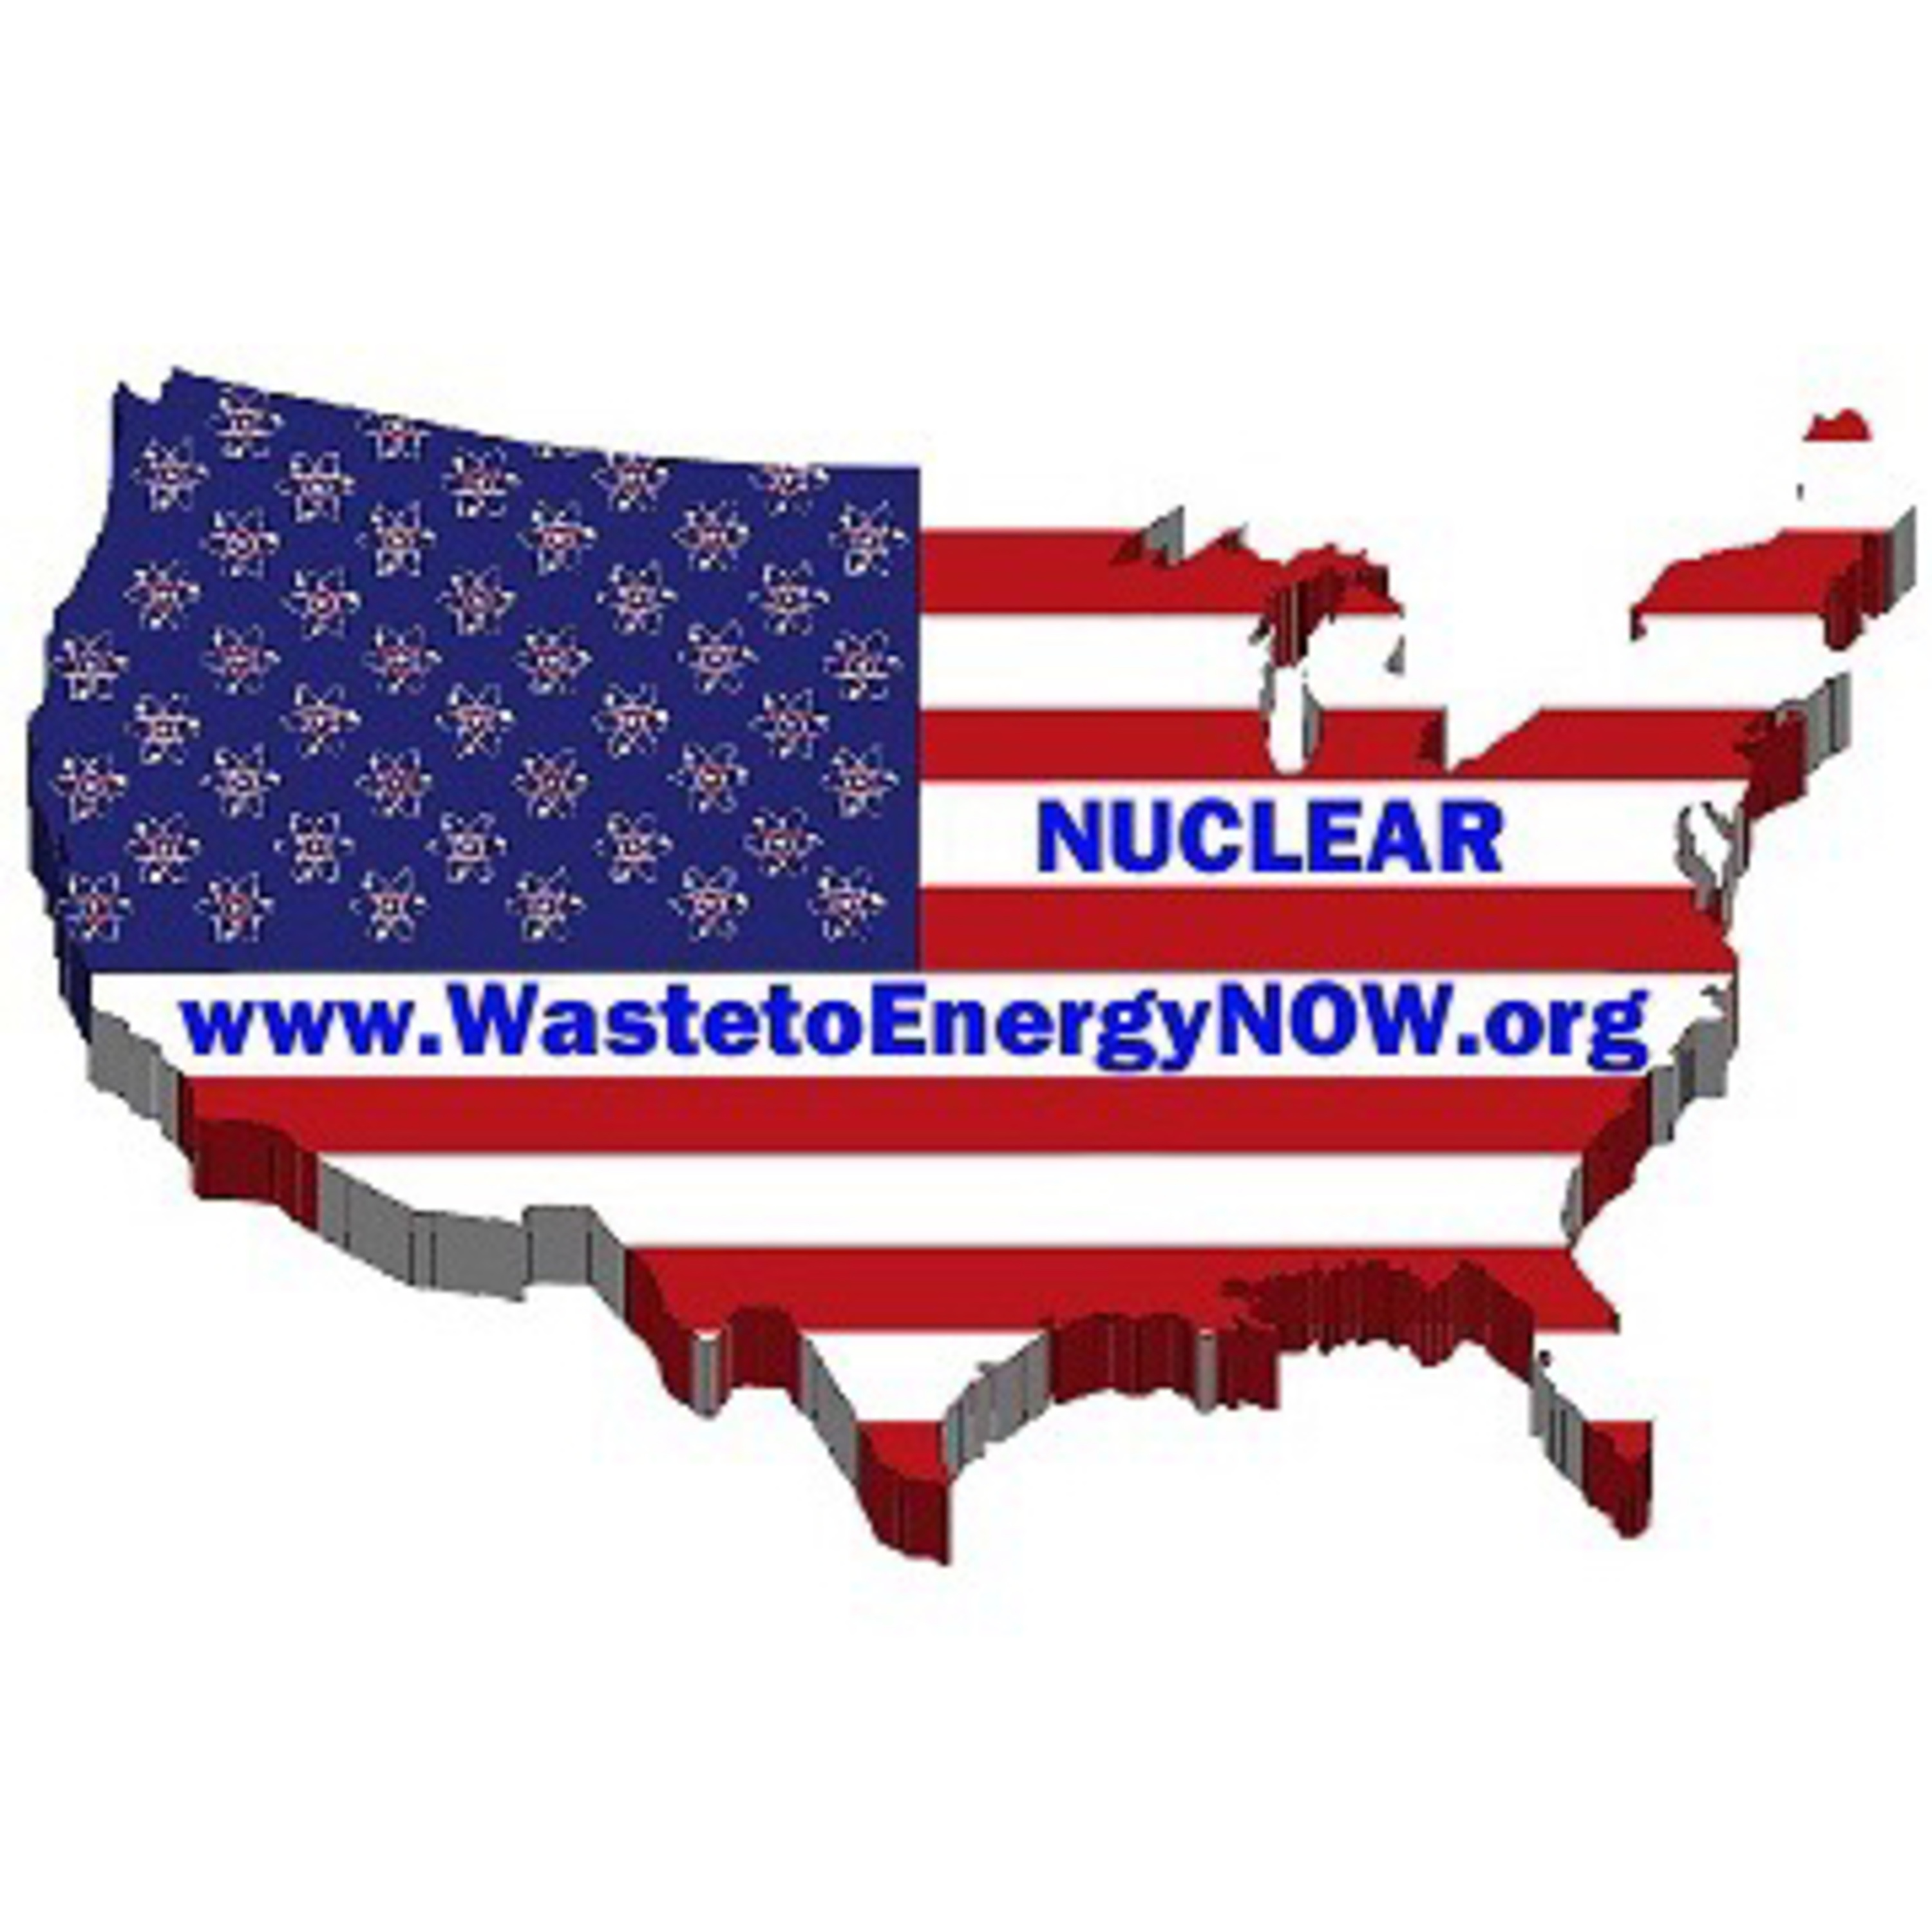 Trailer - Waste to Energy Now! The Clean Energy sensible alternative to just burying it!